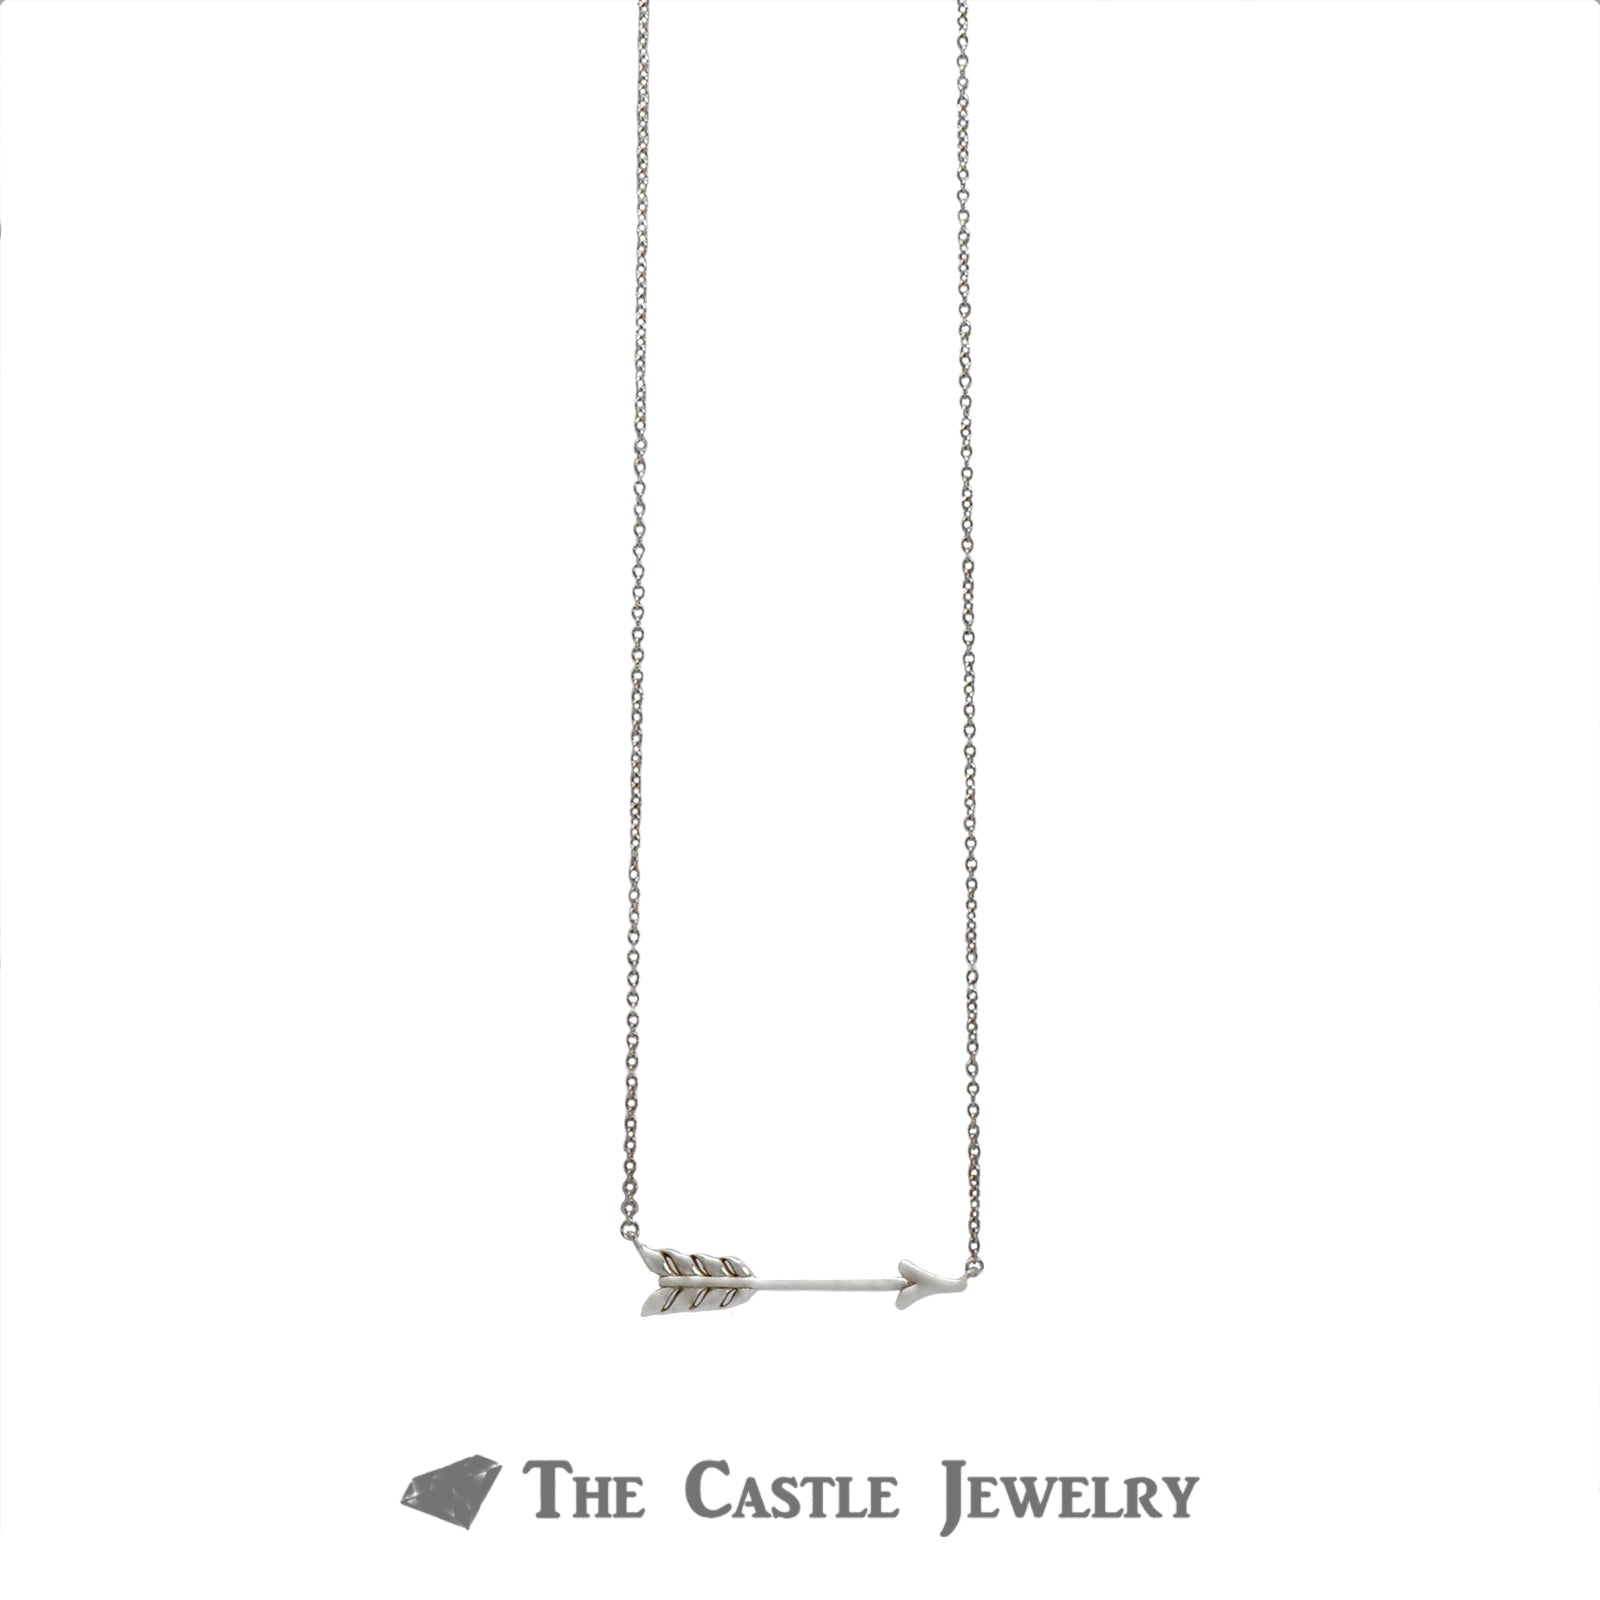 Tiffany & Co. Designer Necklace with Arrow Pendant Crafted in Sterling Silver